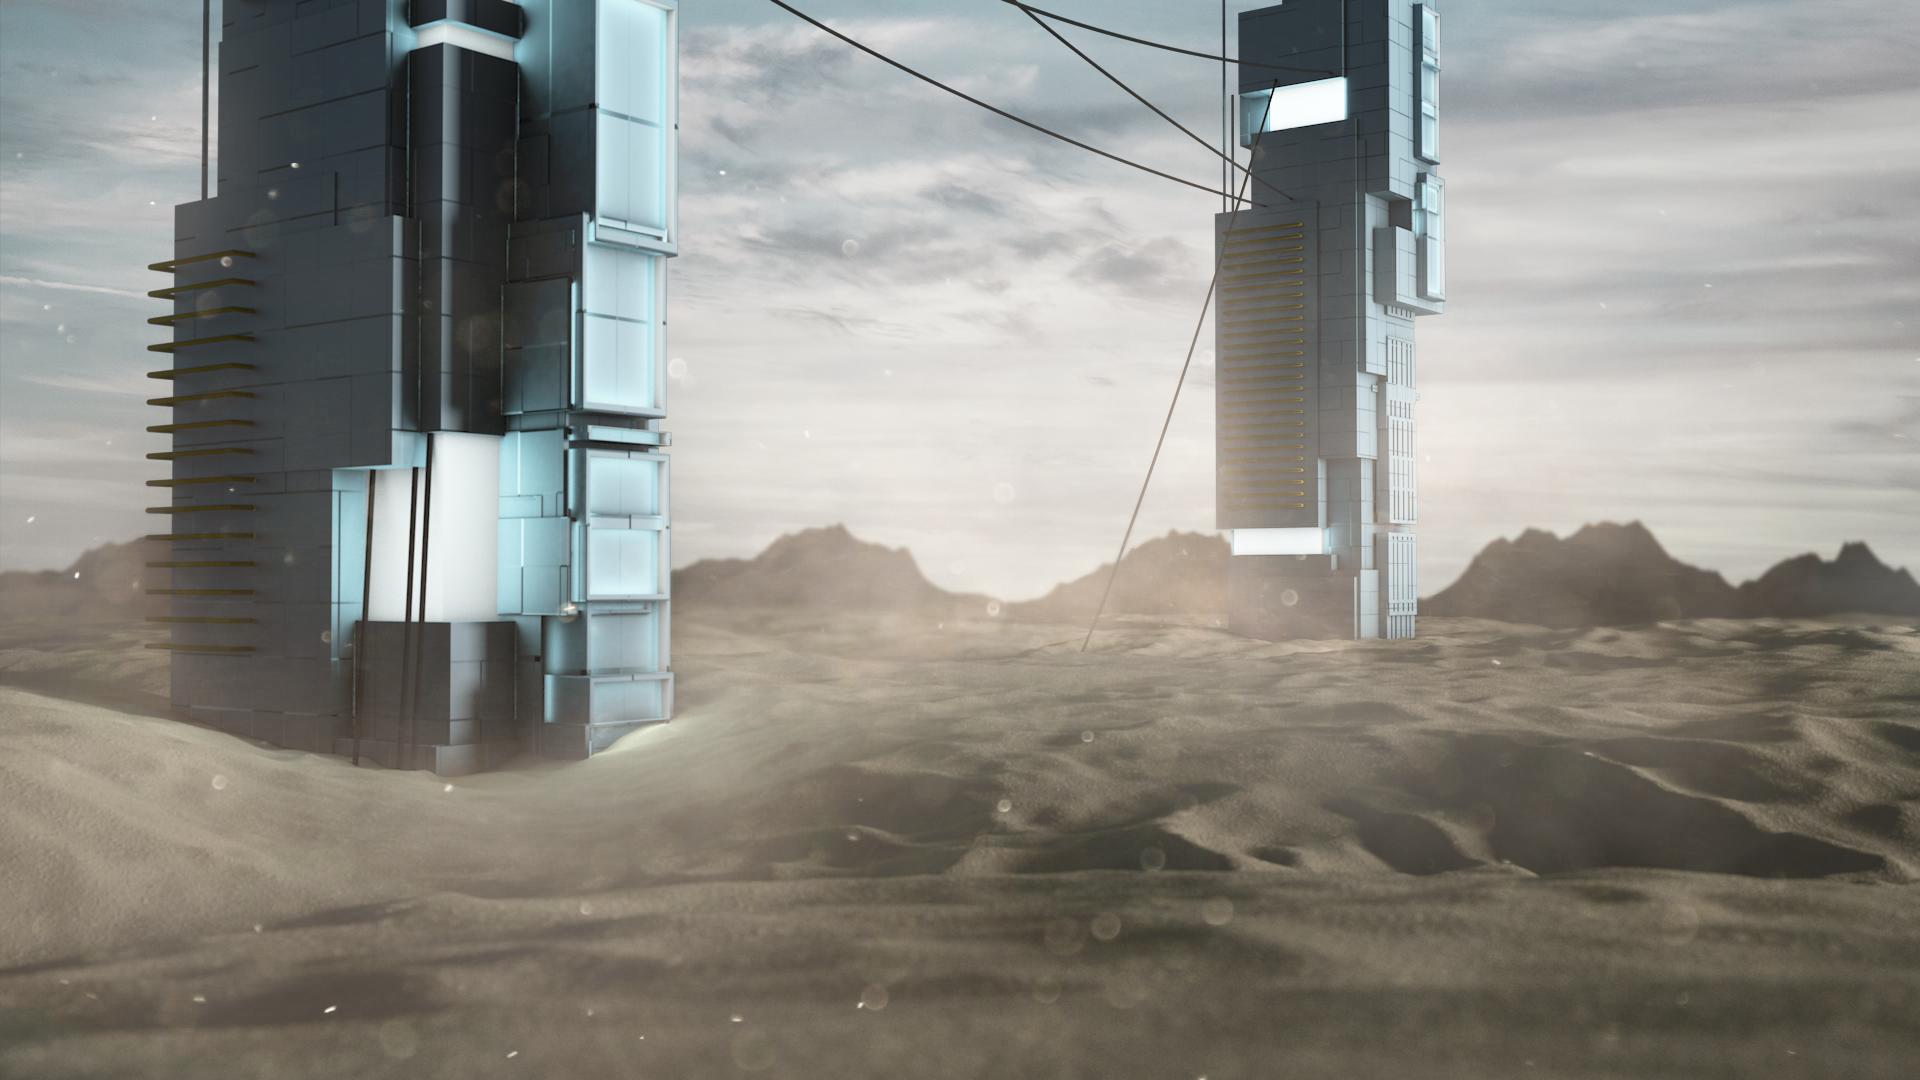 Terrain_1-Recovered.png